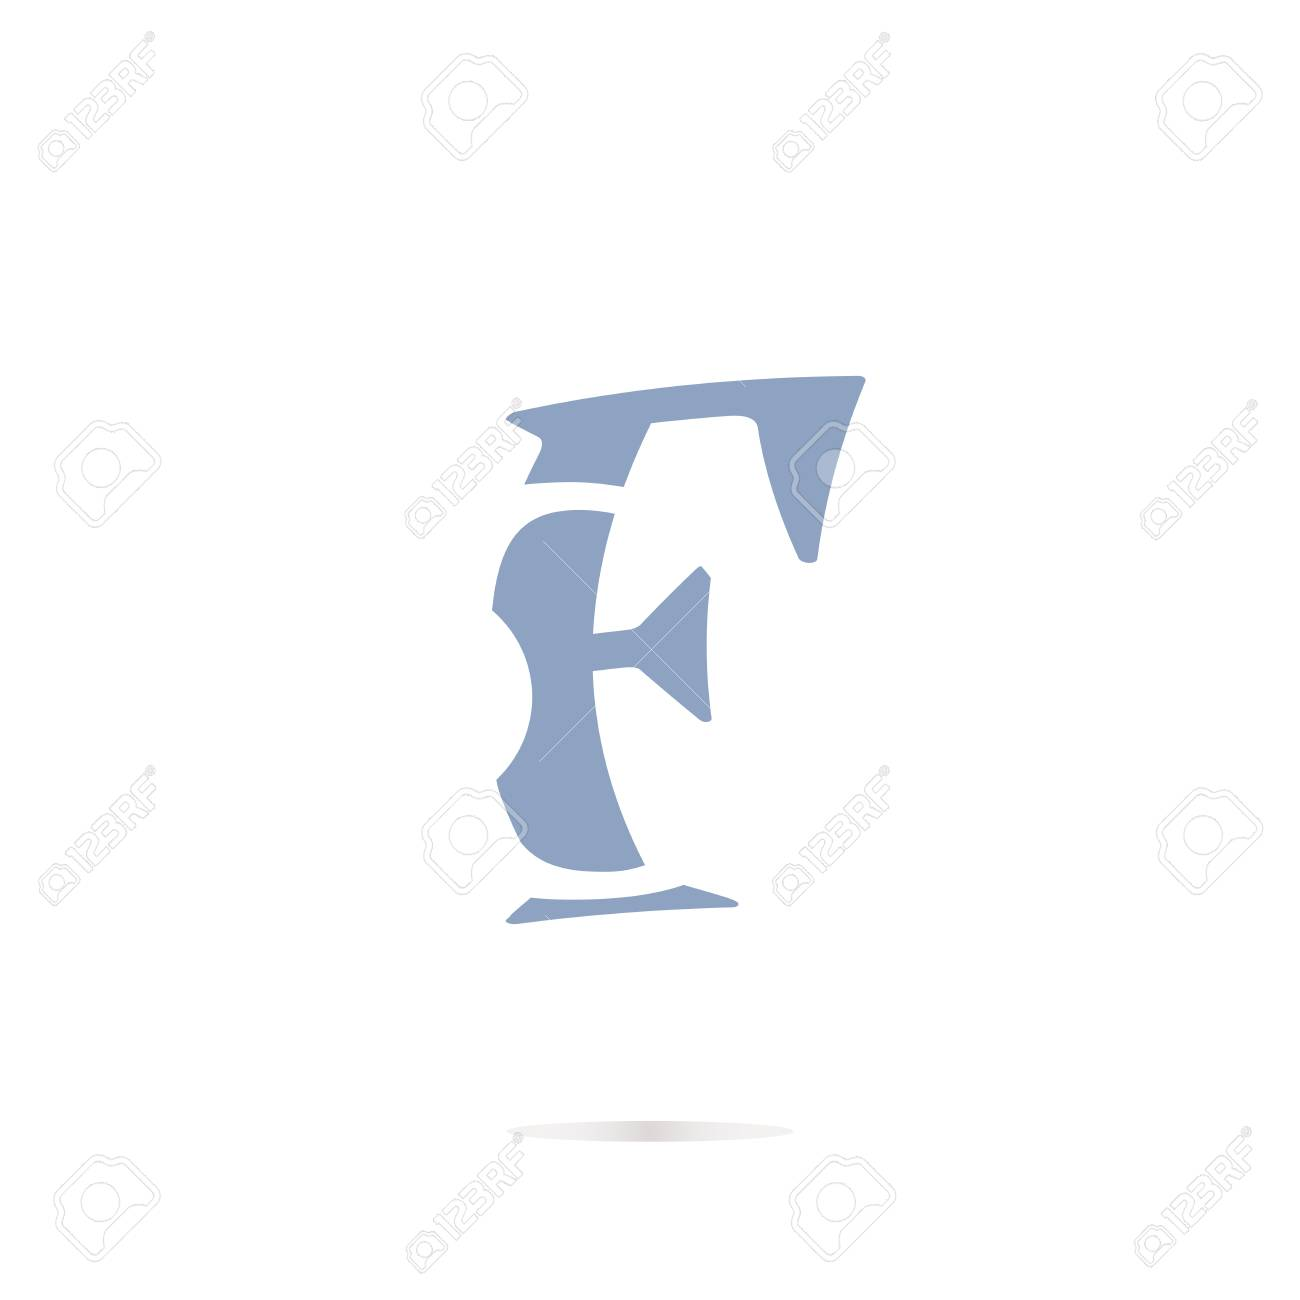 letter f logo icon design template elements stock photo picture and